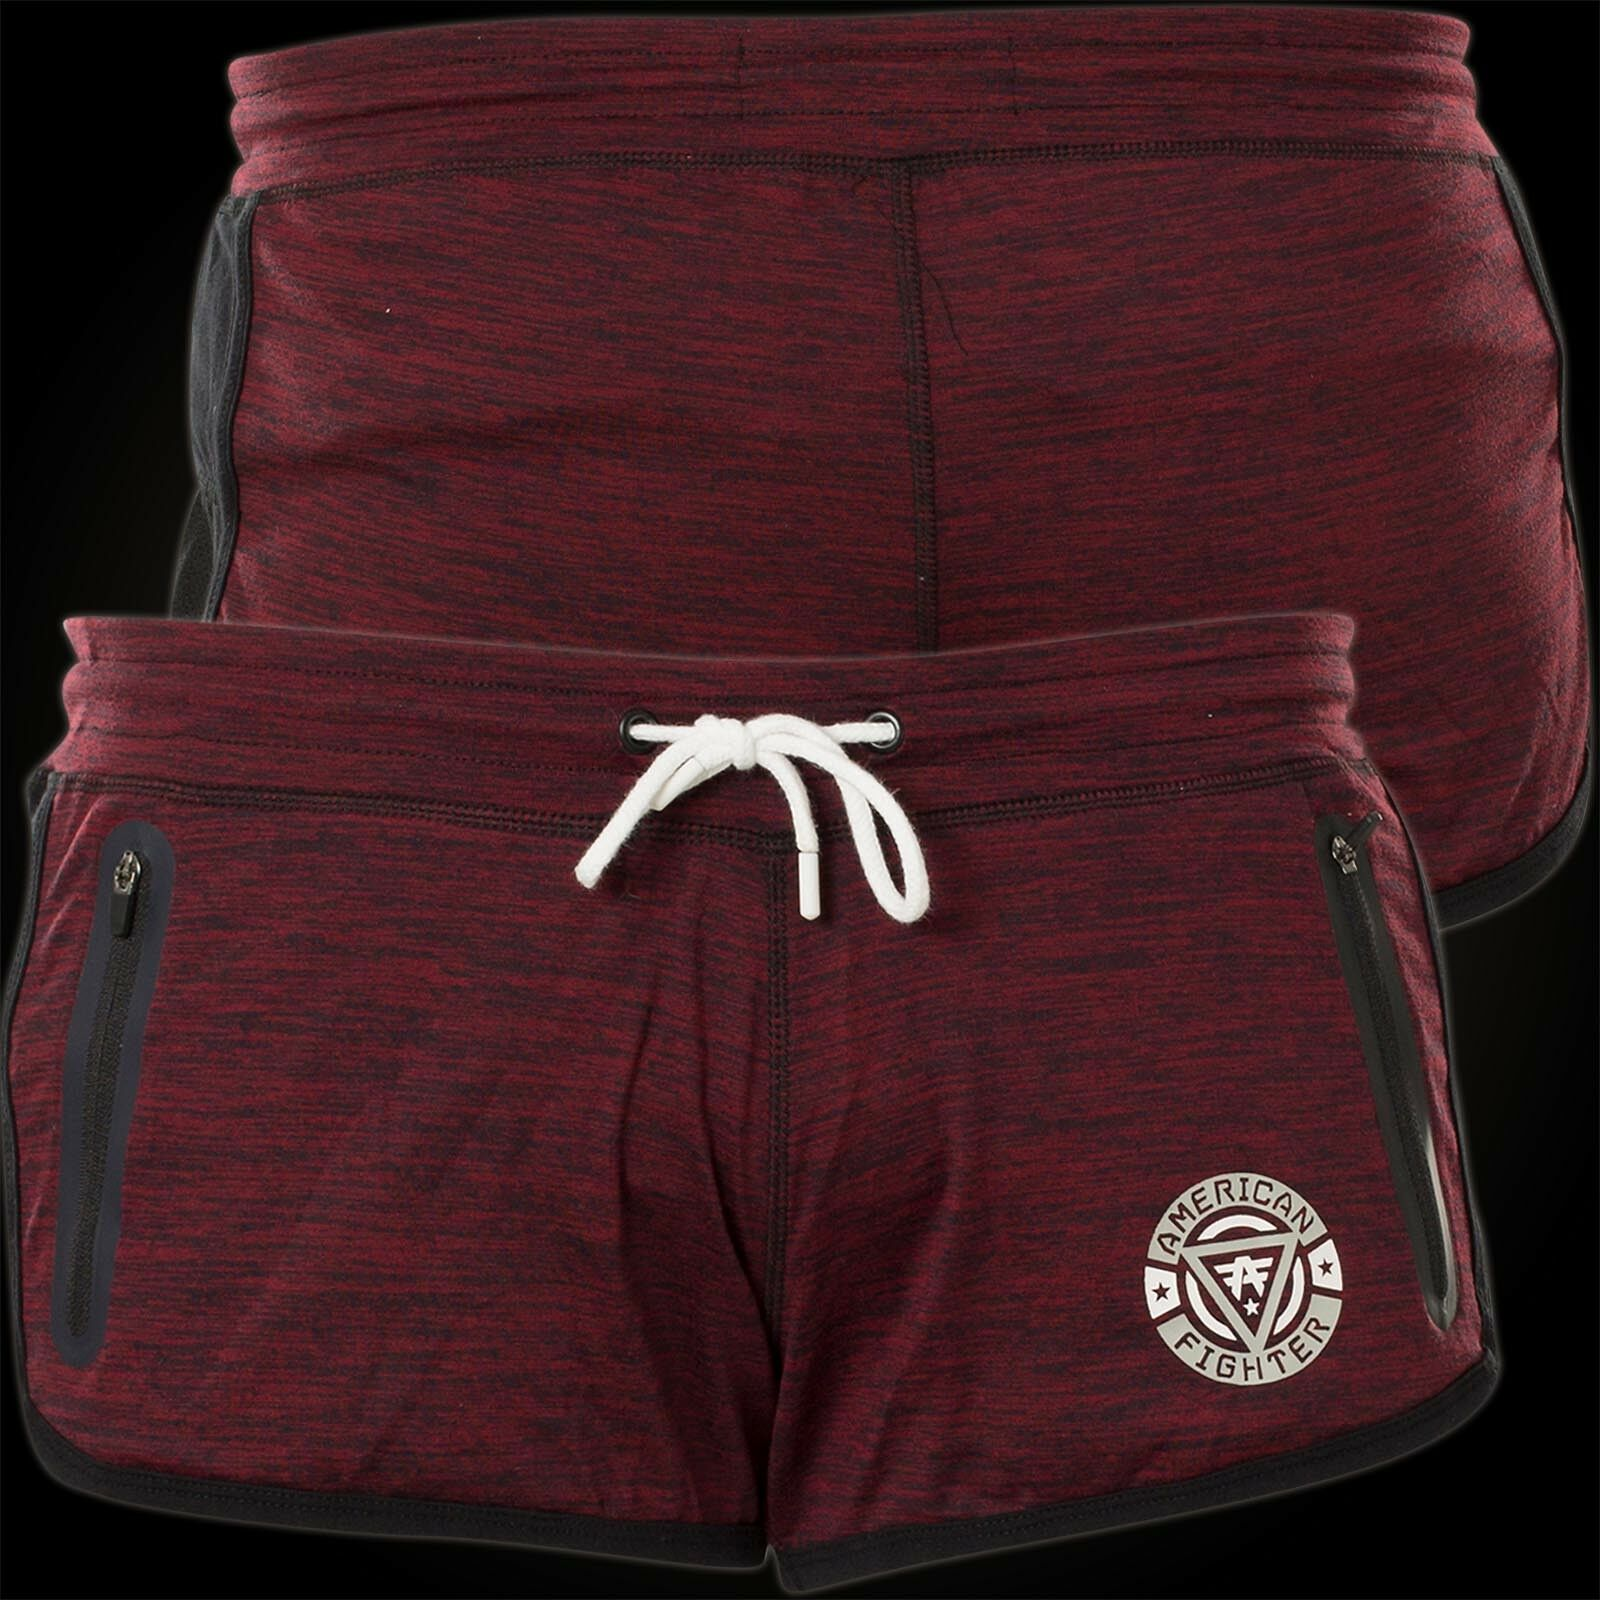 American Fighter by Affliction Woman Shorts Go The Distance Wine red